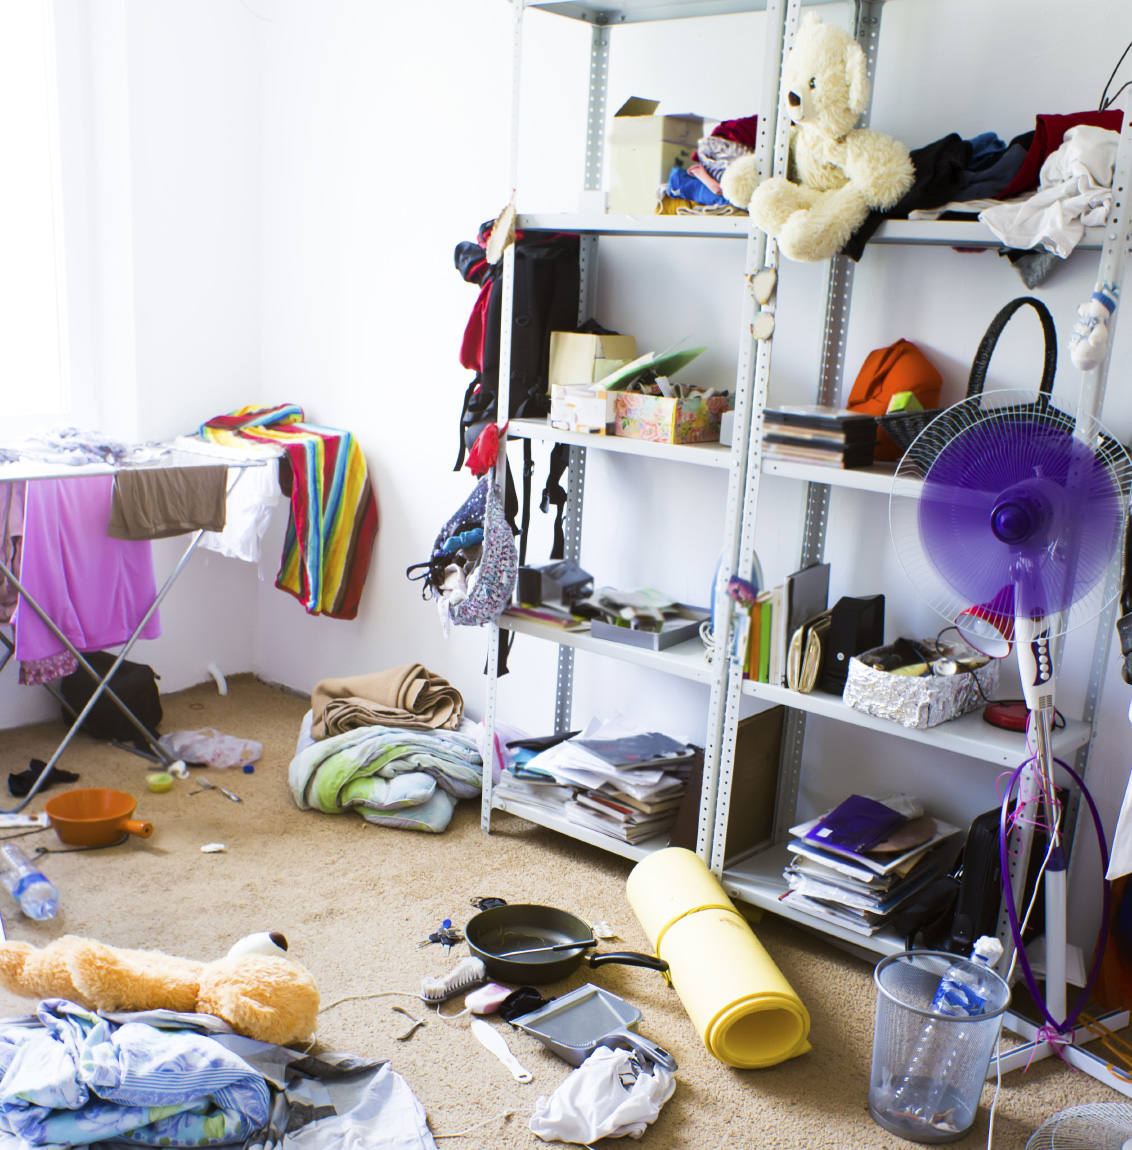 Too much clutter in the home